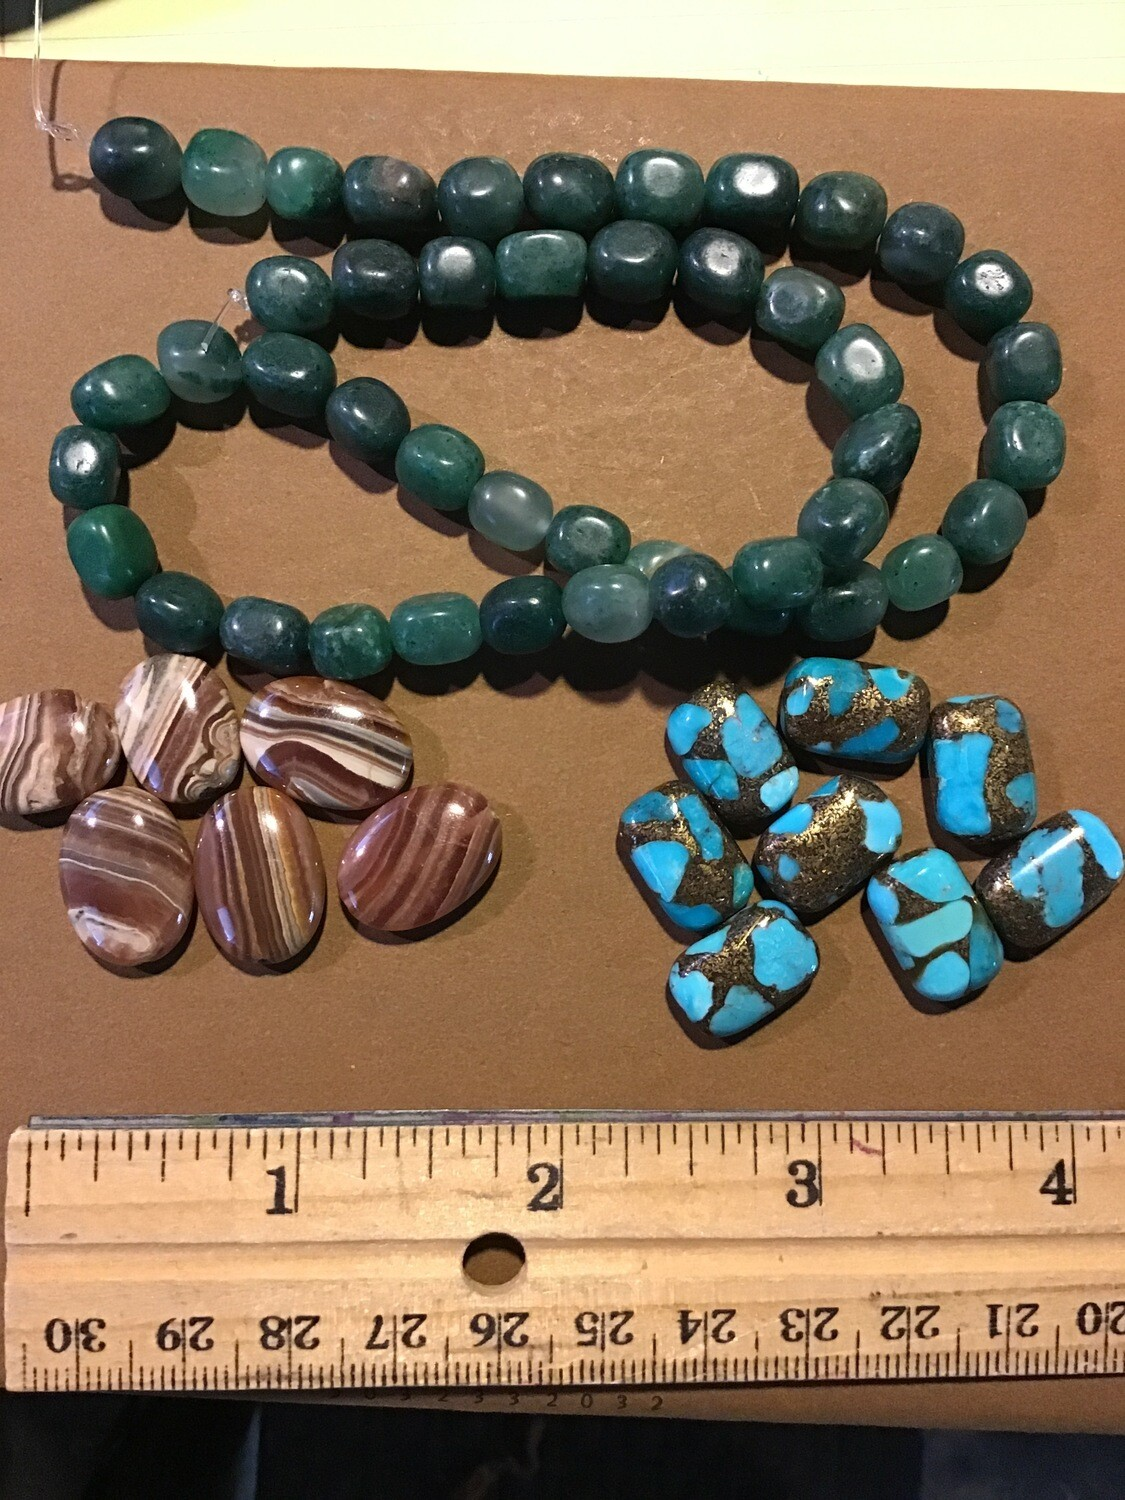 Beads: African Jade, Honey Brown Rhodochrosite, and Copper Inlaid Turquoise Beads